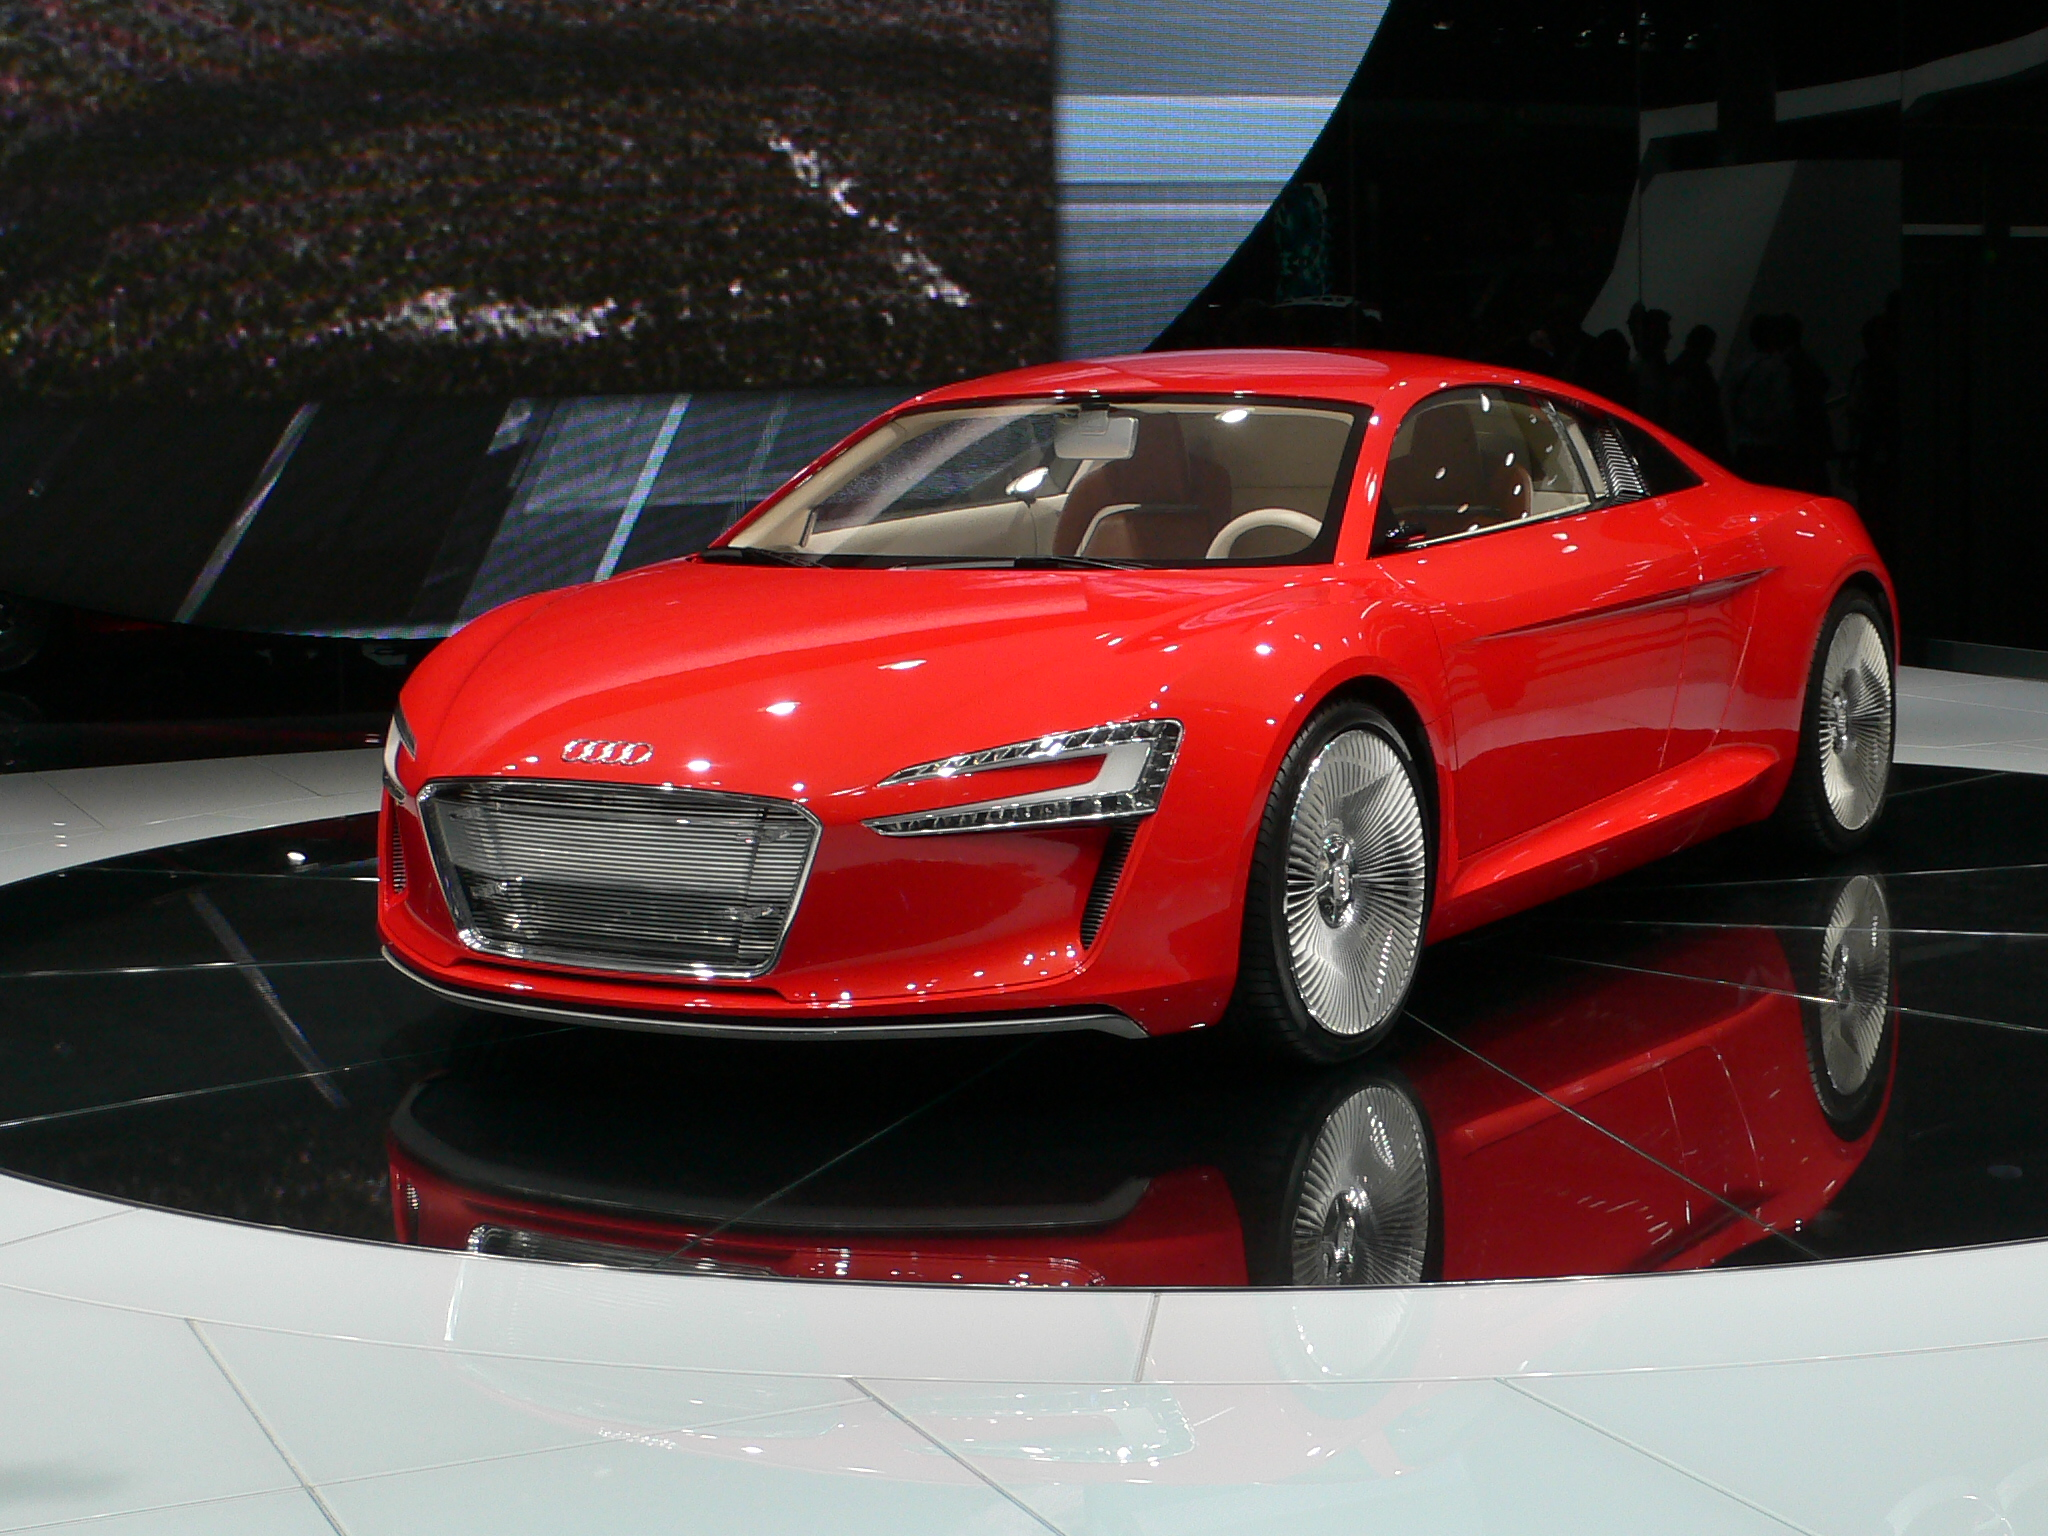 audi r8 e tron l lectrique un autre niveau blog. Black Bedroom Furniture Sets. Home Design Ideas